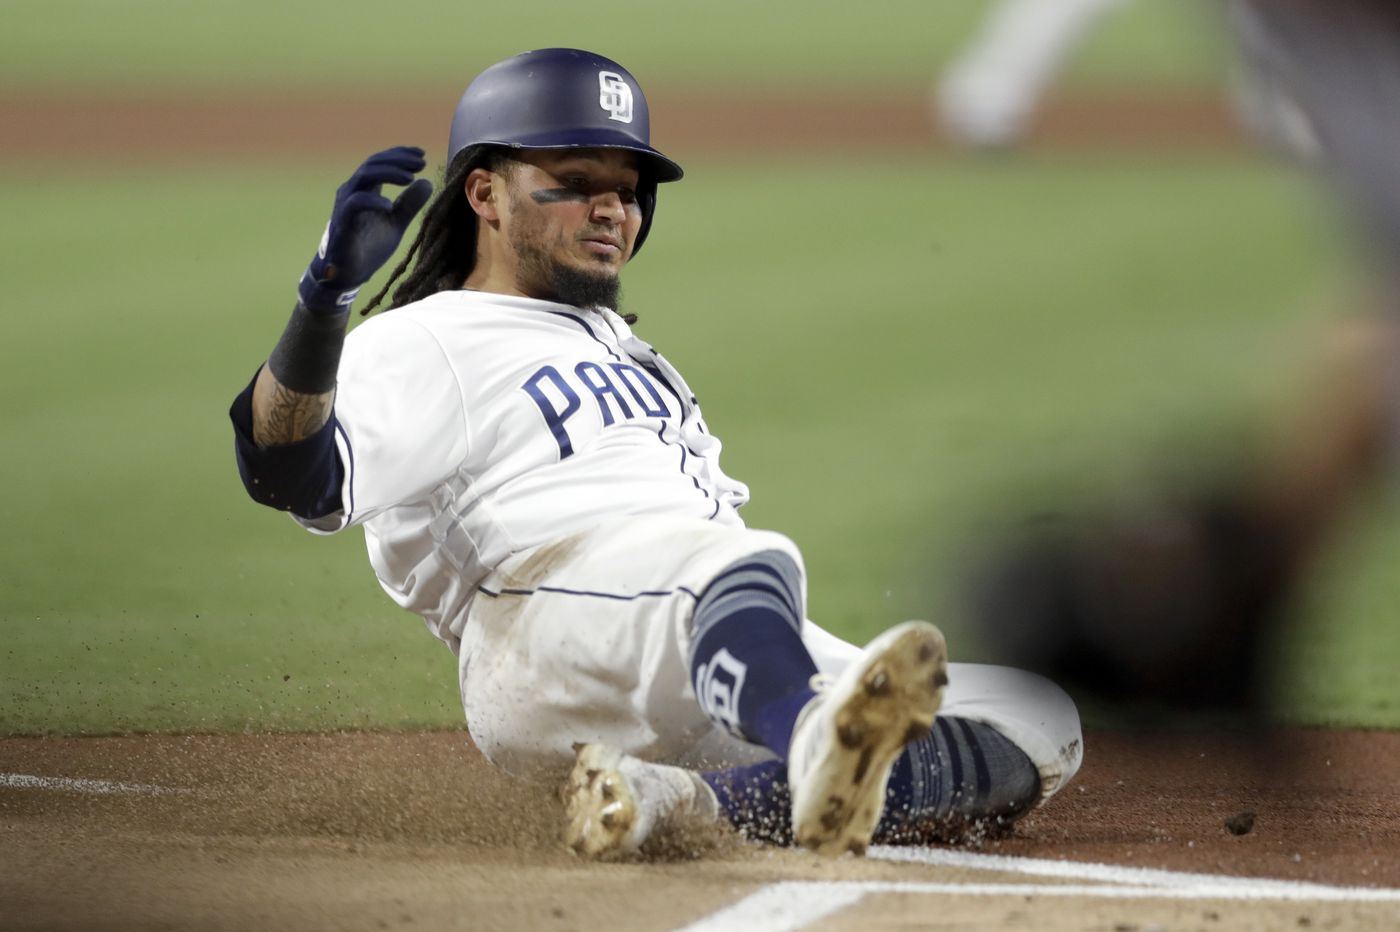 Former Phillie Freddy Galvis, Blue Jays agree to one-year contract worth $5 million